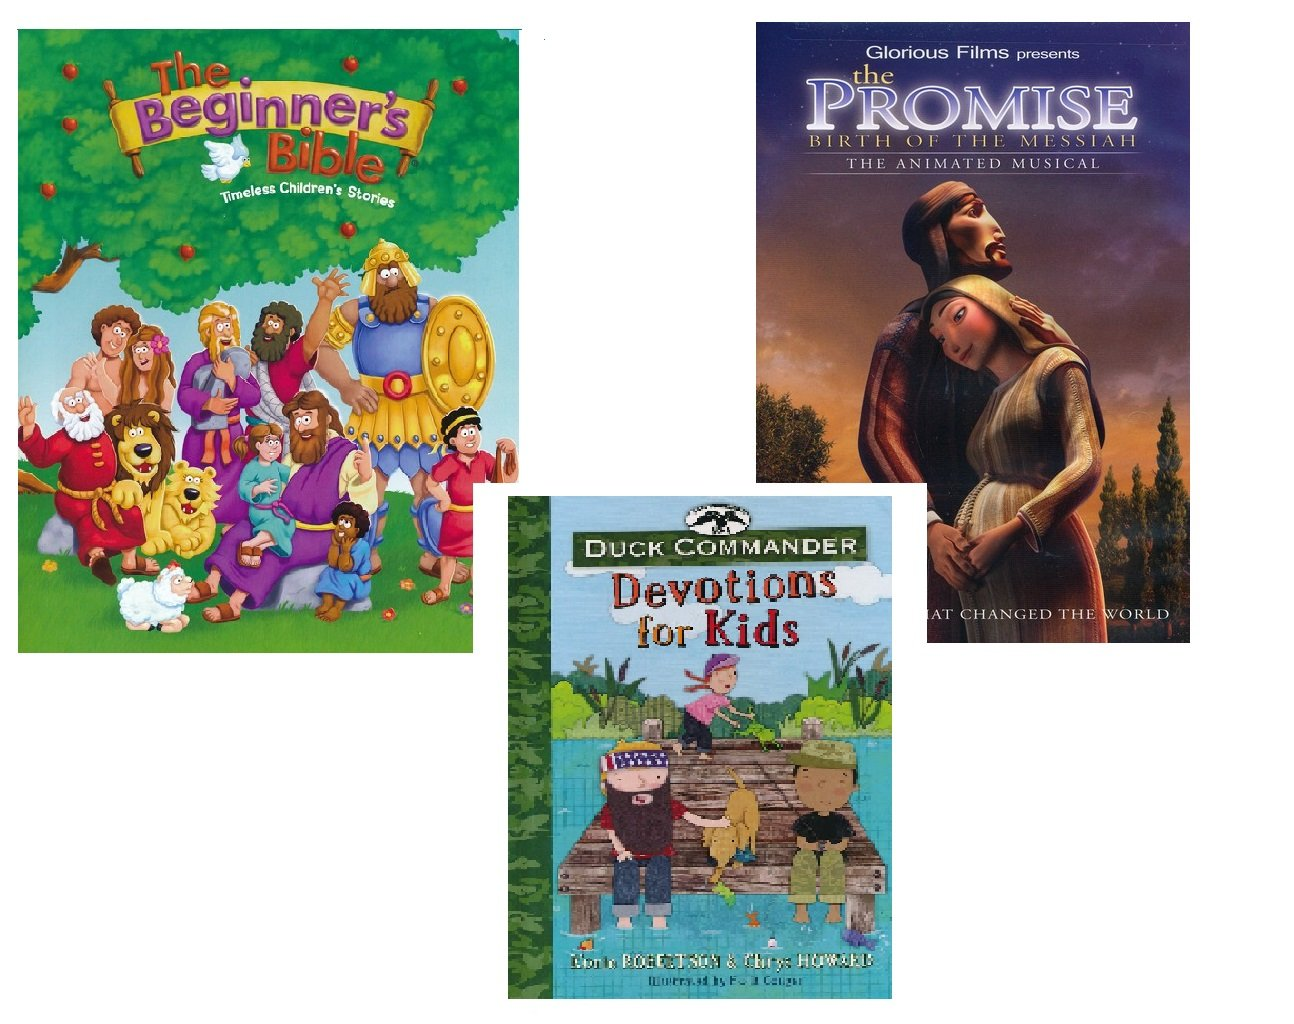 Amazon.com : Children's Christian Gift Set - The Beginner's Bible, The  Promise Birth of The Messiah: Animated Musical, DVD Plus Duck Commander  Devotions for ...